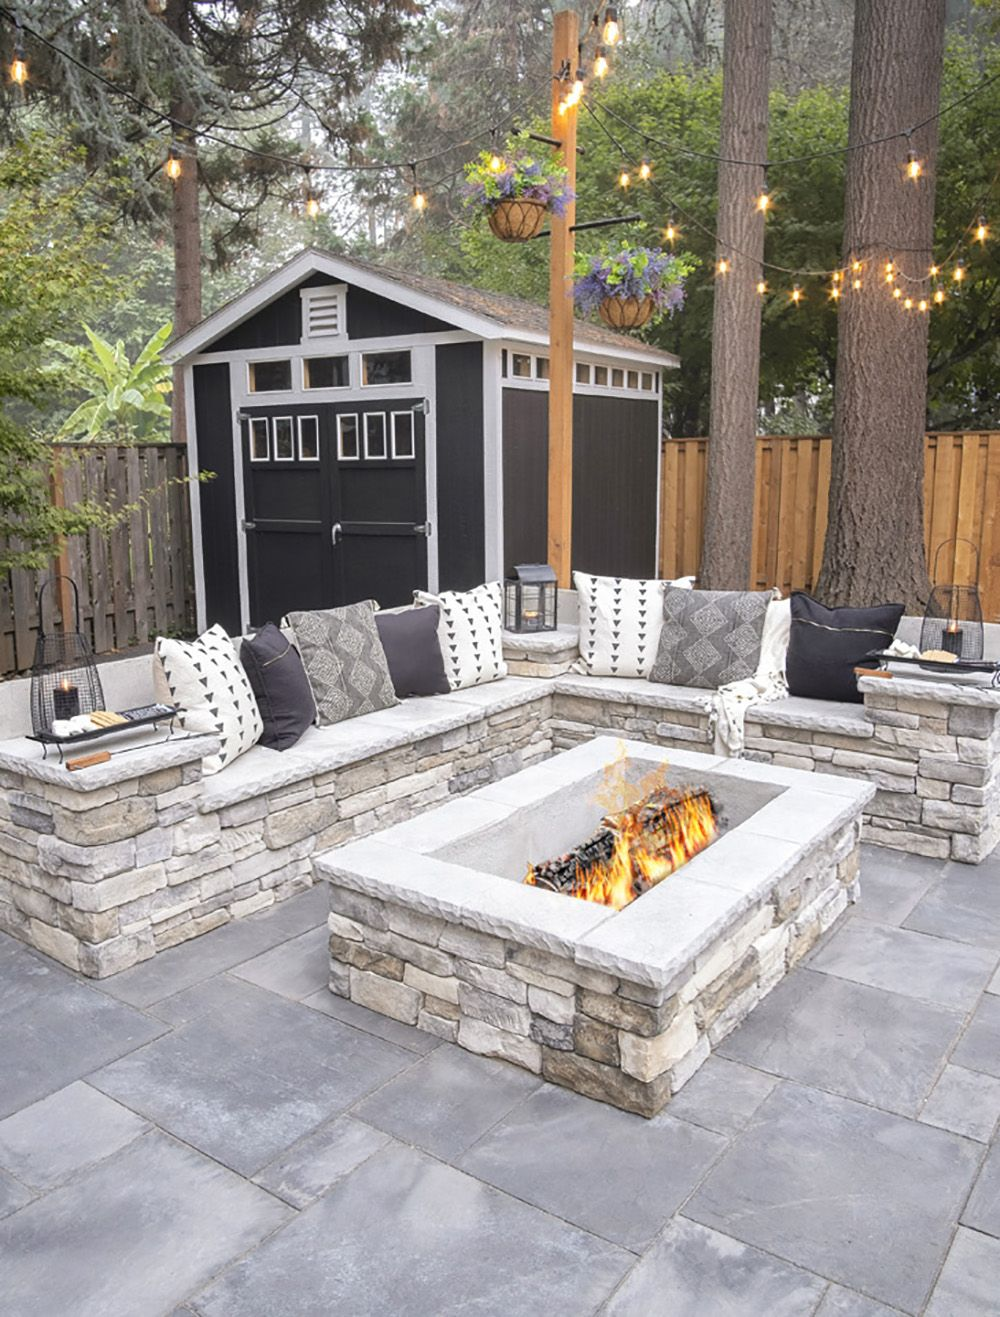 Double Sided Outdoor Fireplace Paradise Restored Landscaping Backyard Renovations Outdoor Fireplace Patio Backyard Remodel Modern patio fire pit designs